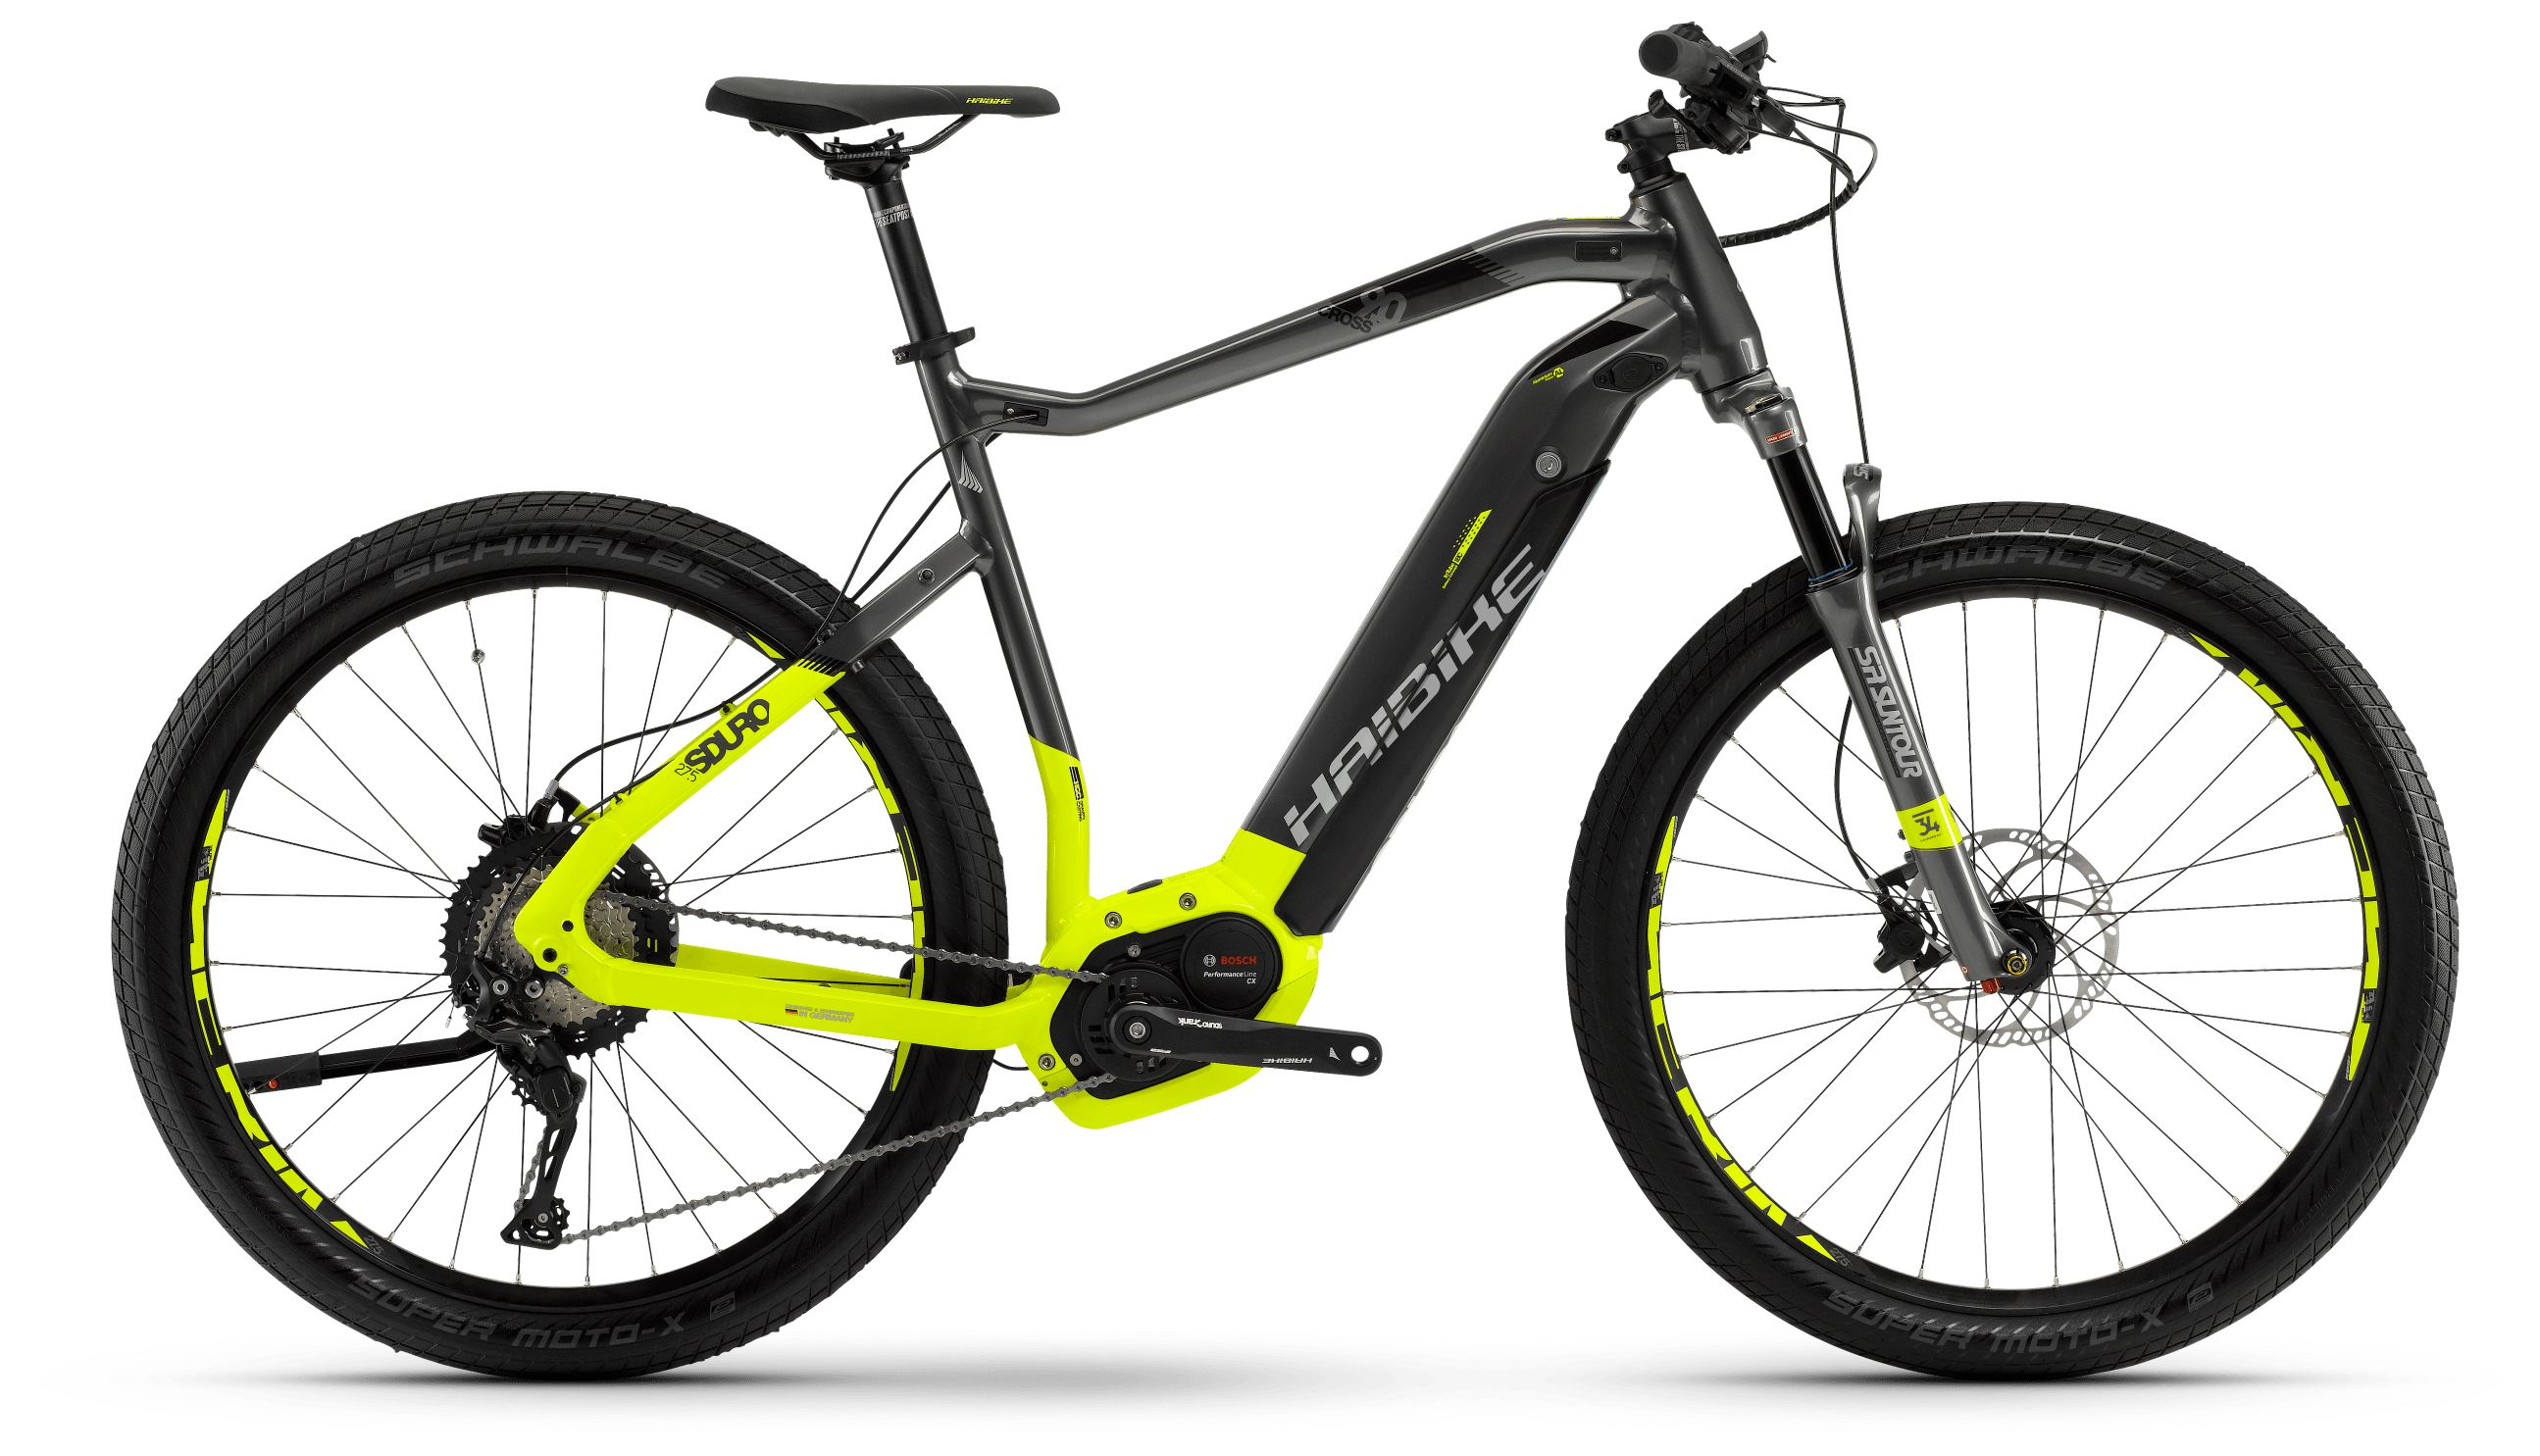 Велосипед Haibike Sduro Cross 9.0 men 500Wh 11s XT 2018 велосипед haibike sduro fullnine 7 0 500wh 11s nx 2018